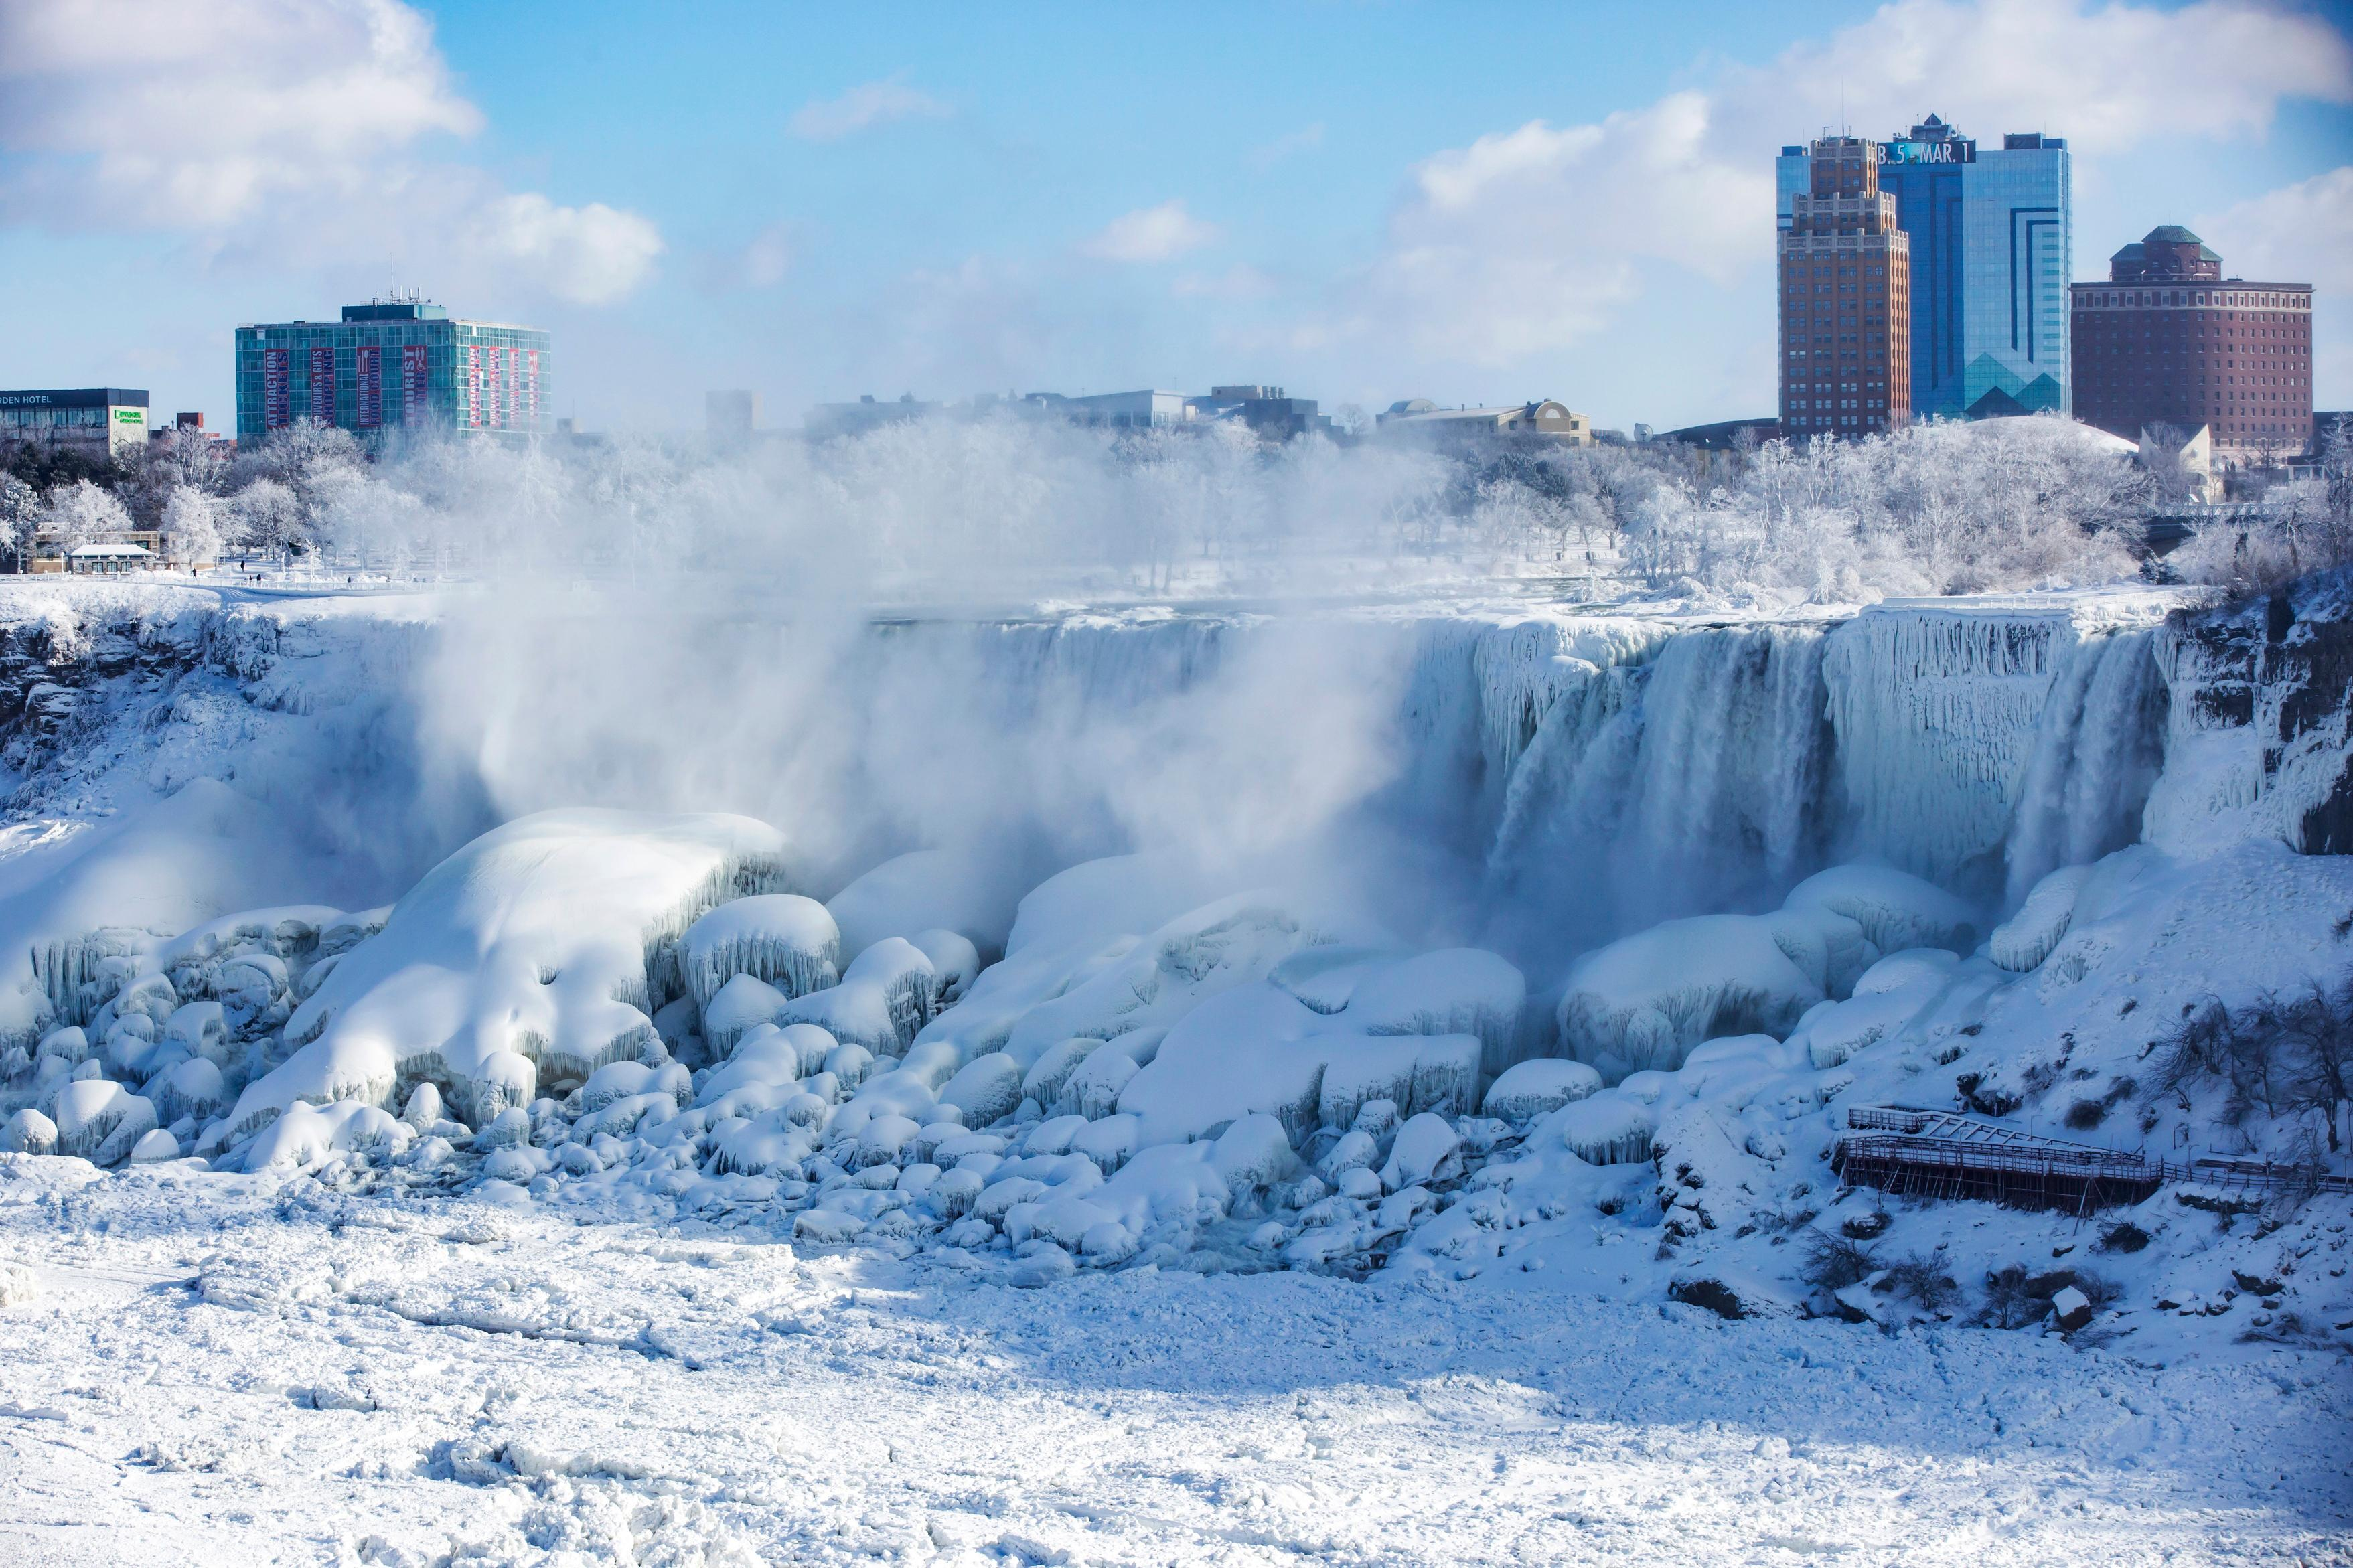 Ice and water flows over the American Falls, seen from Niagara Falls, Ontario, Canada Thursday, Jan. 31, 2019.  (Tara Walton/The Canadian Press via AP)